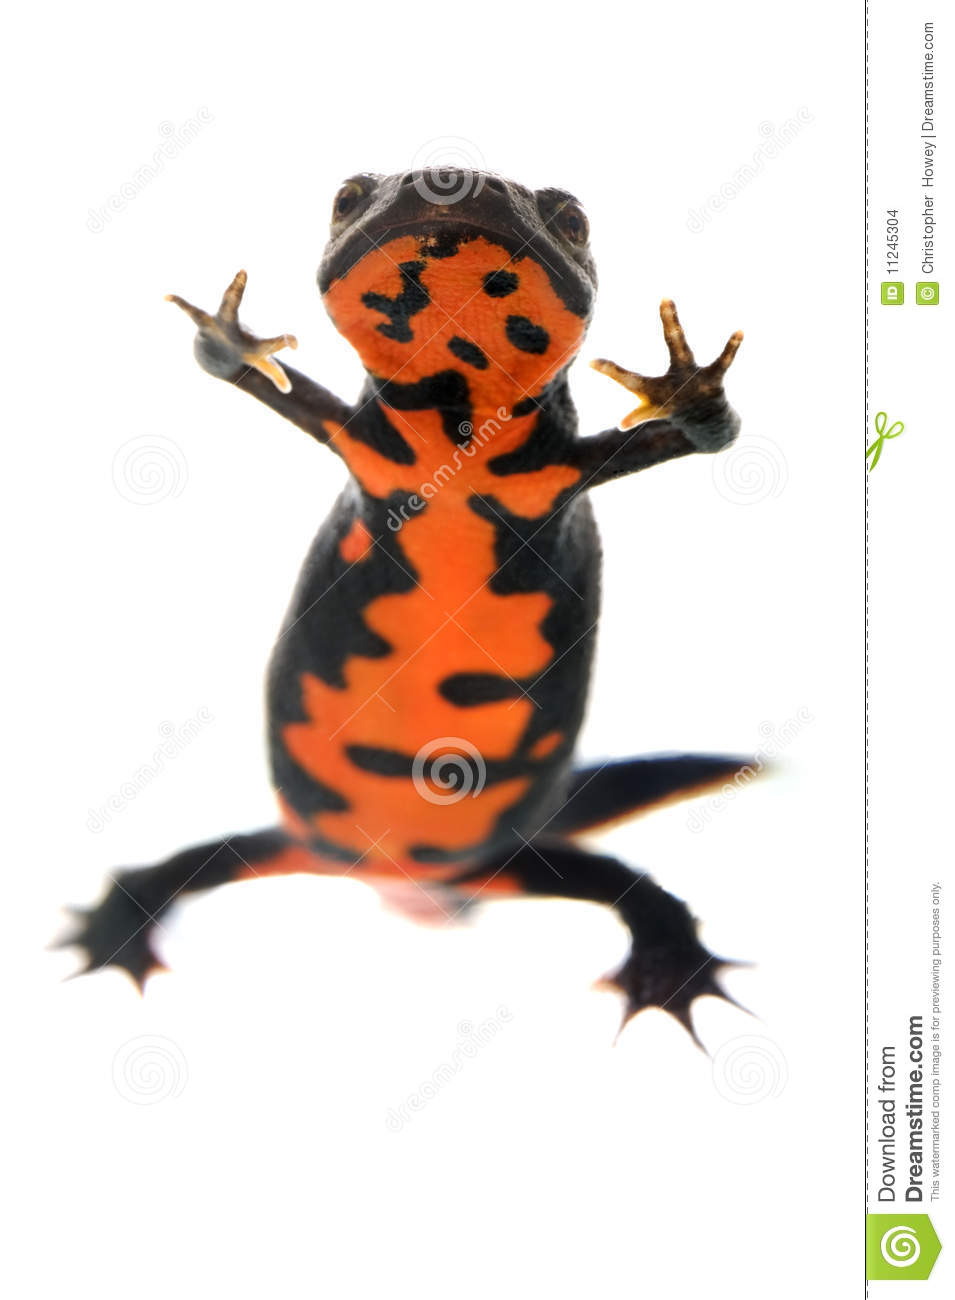 Red Bellied Newt clipart #19, Download drawings